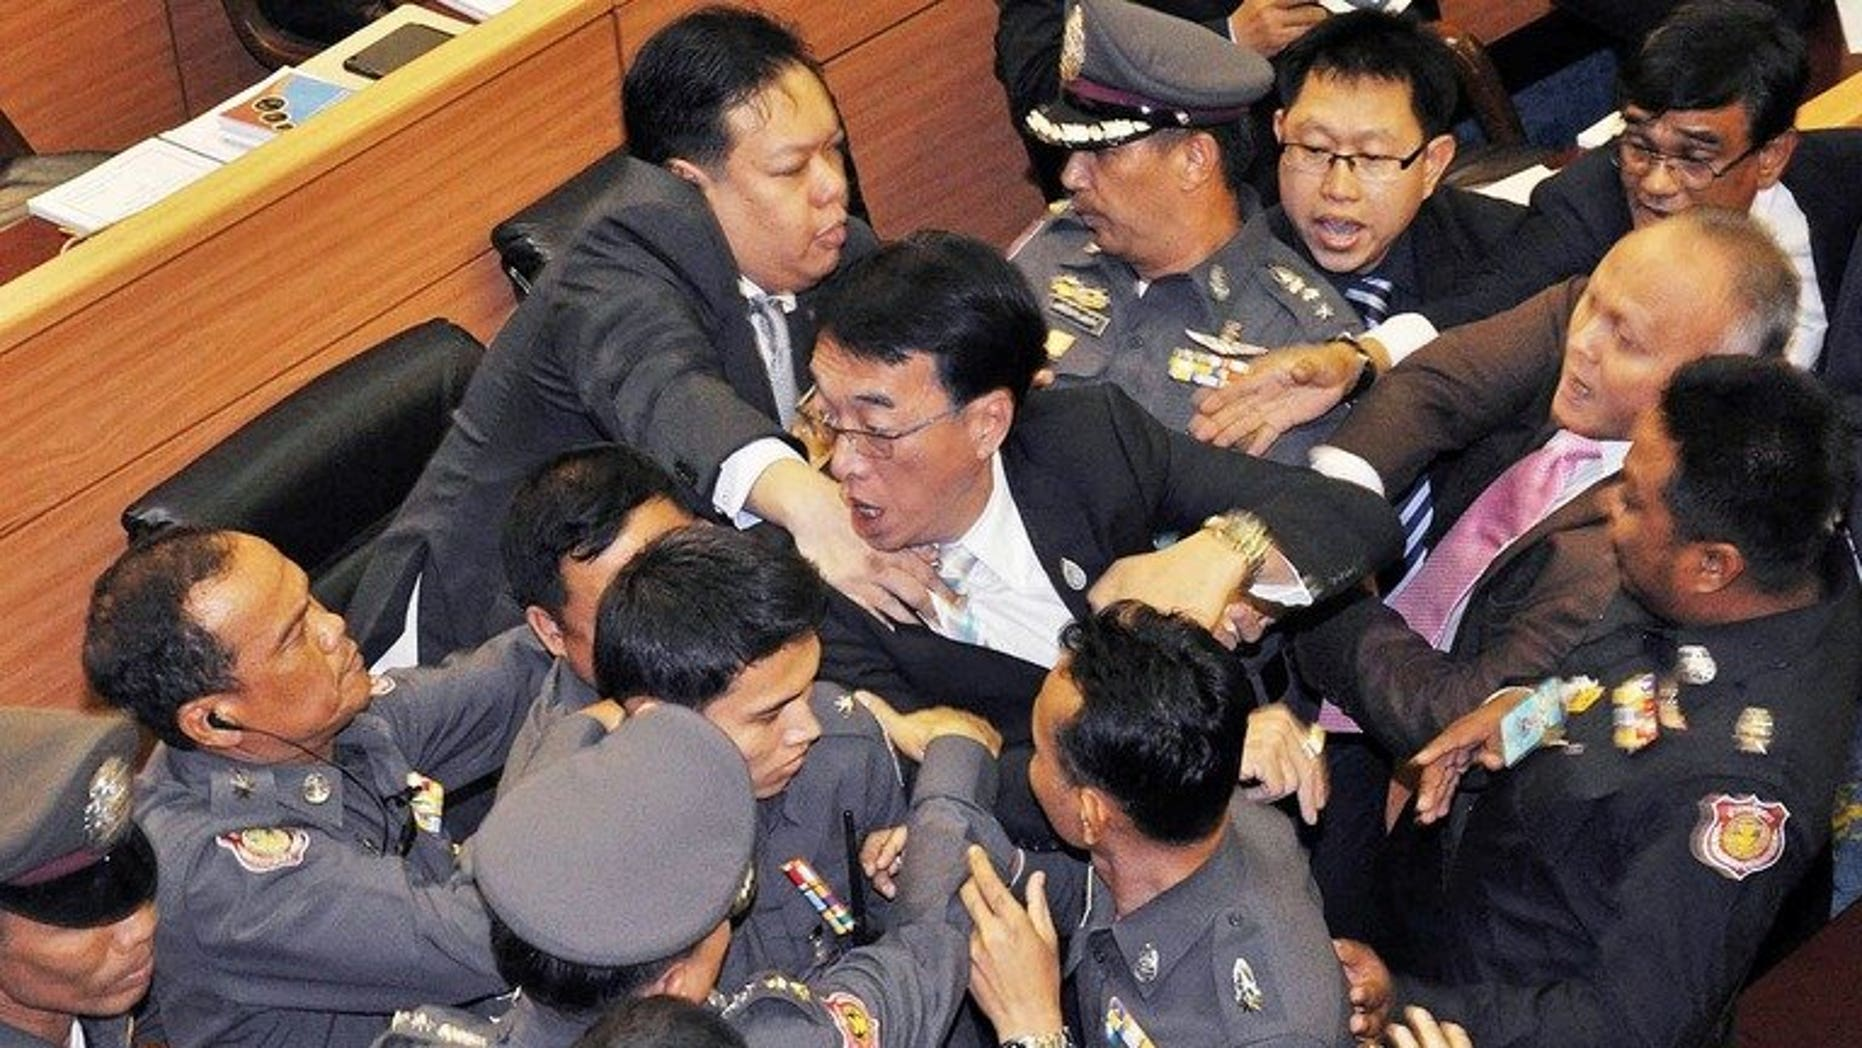 Members of the opposition Democrat party (C) are surrounded by parliament police officers during a brawl in parliament in Bangkok on August 20, 2013. Thailand's parliament briefly descended into chaos on Tuesday as opposition lawmakers brawled with police during a debate on controversial proposals to amend the constitution.